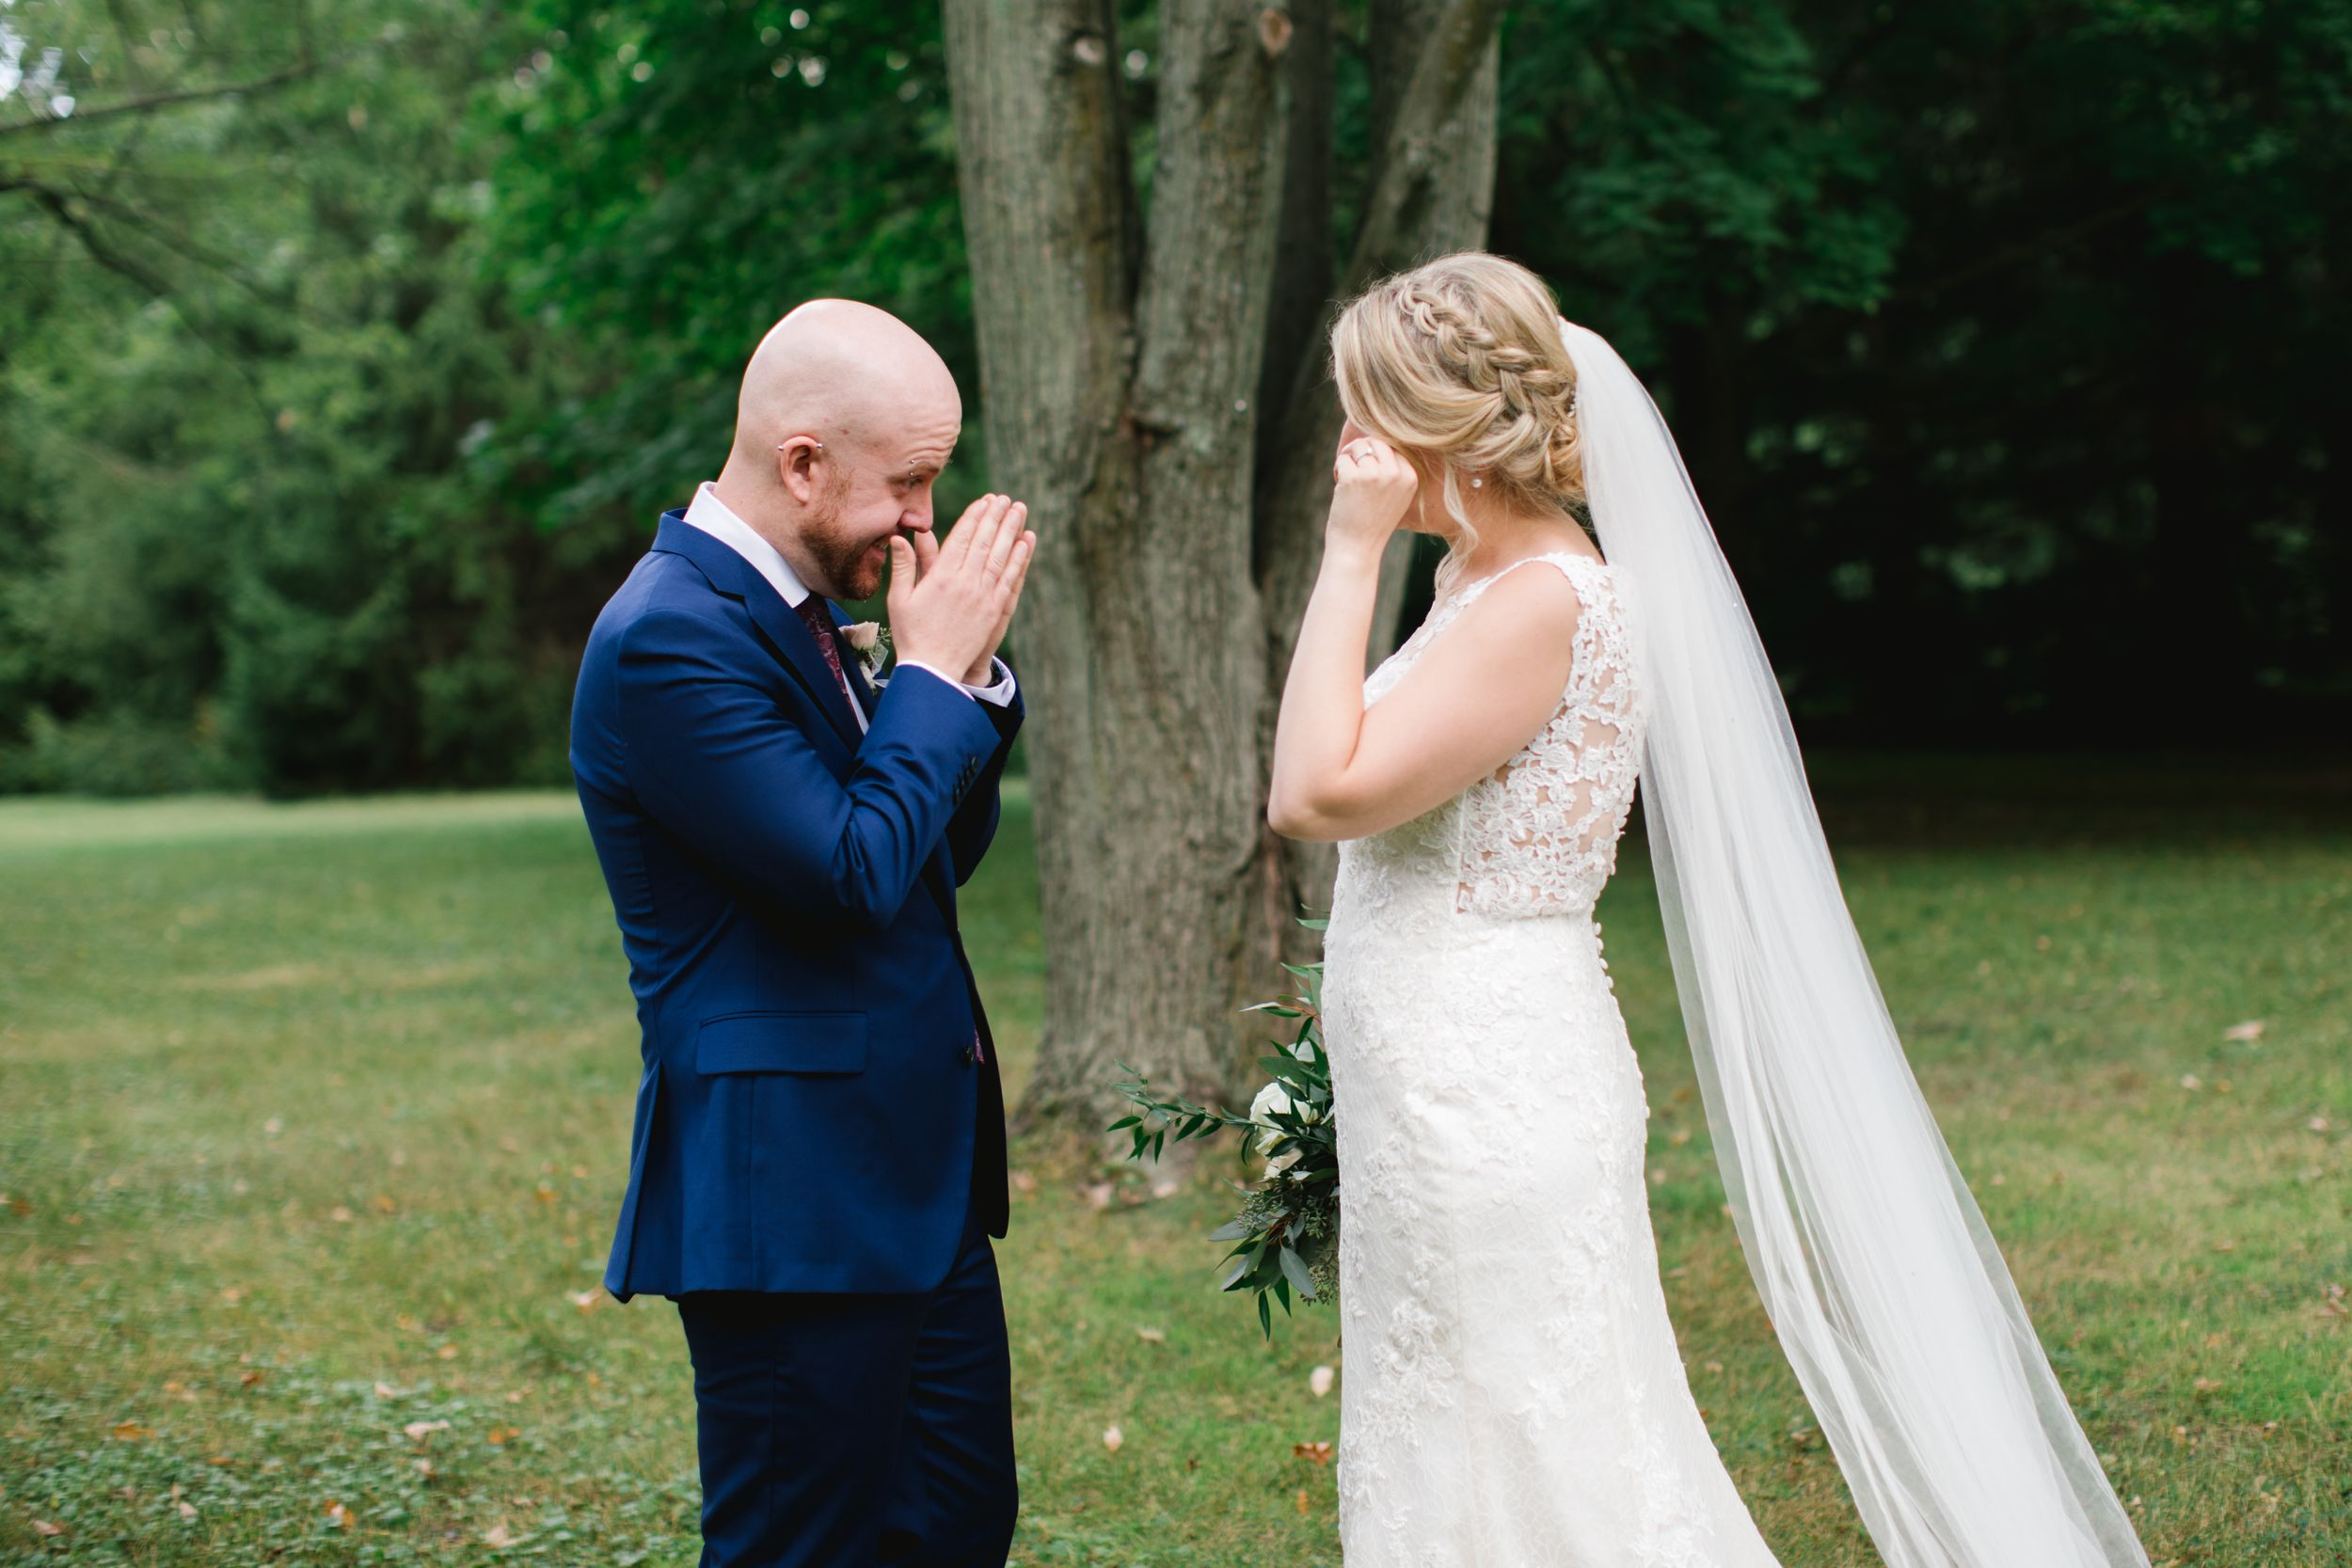 bride and groom wiping away tears after first look in park